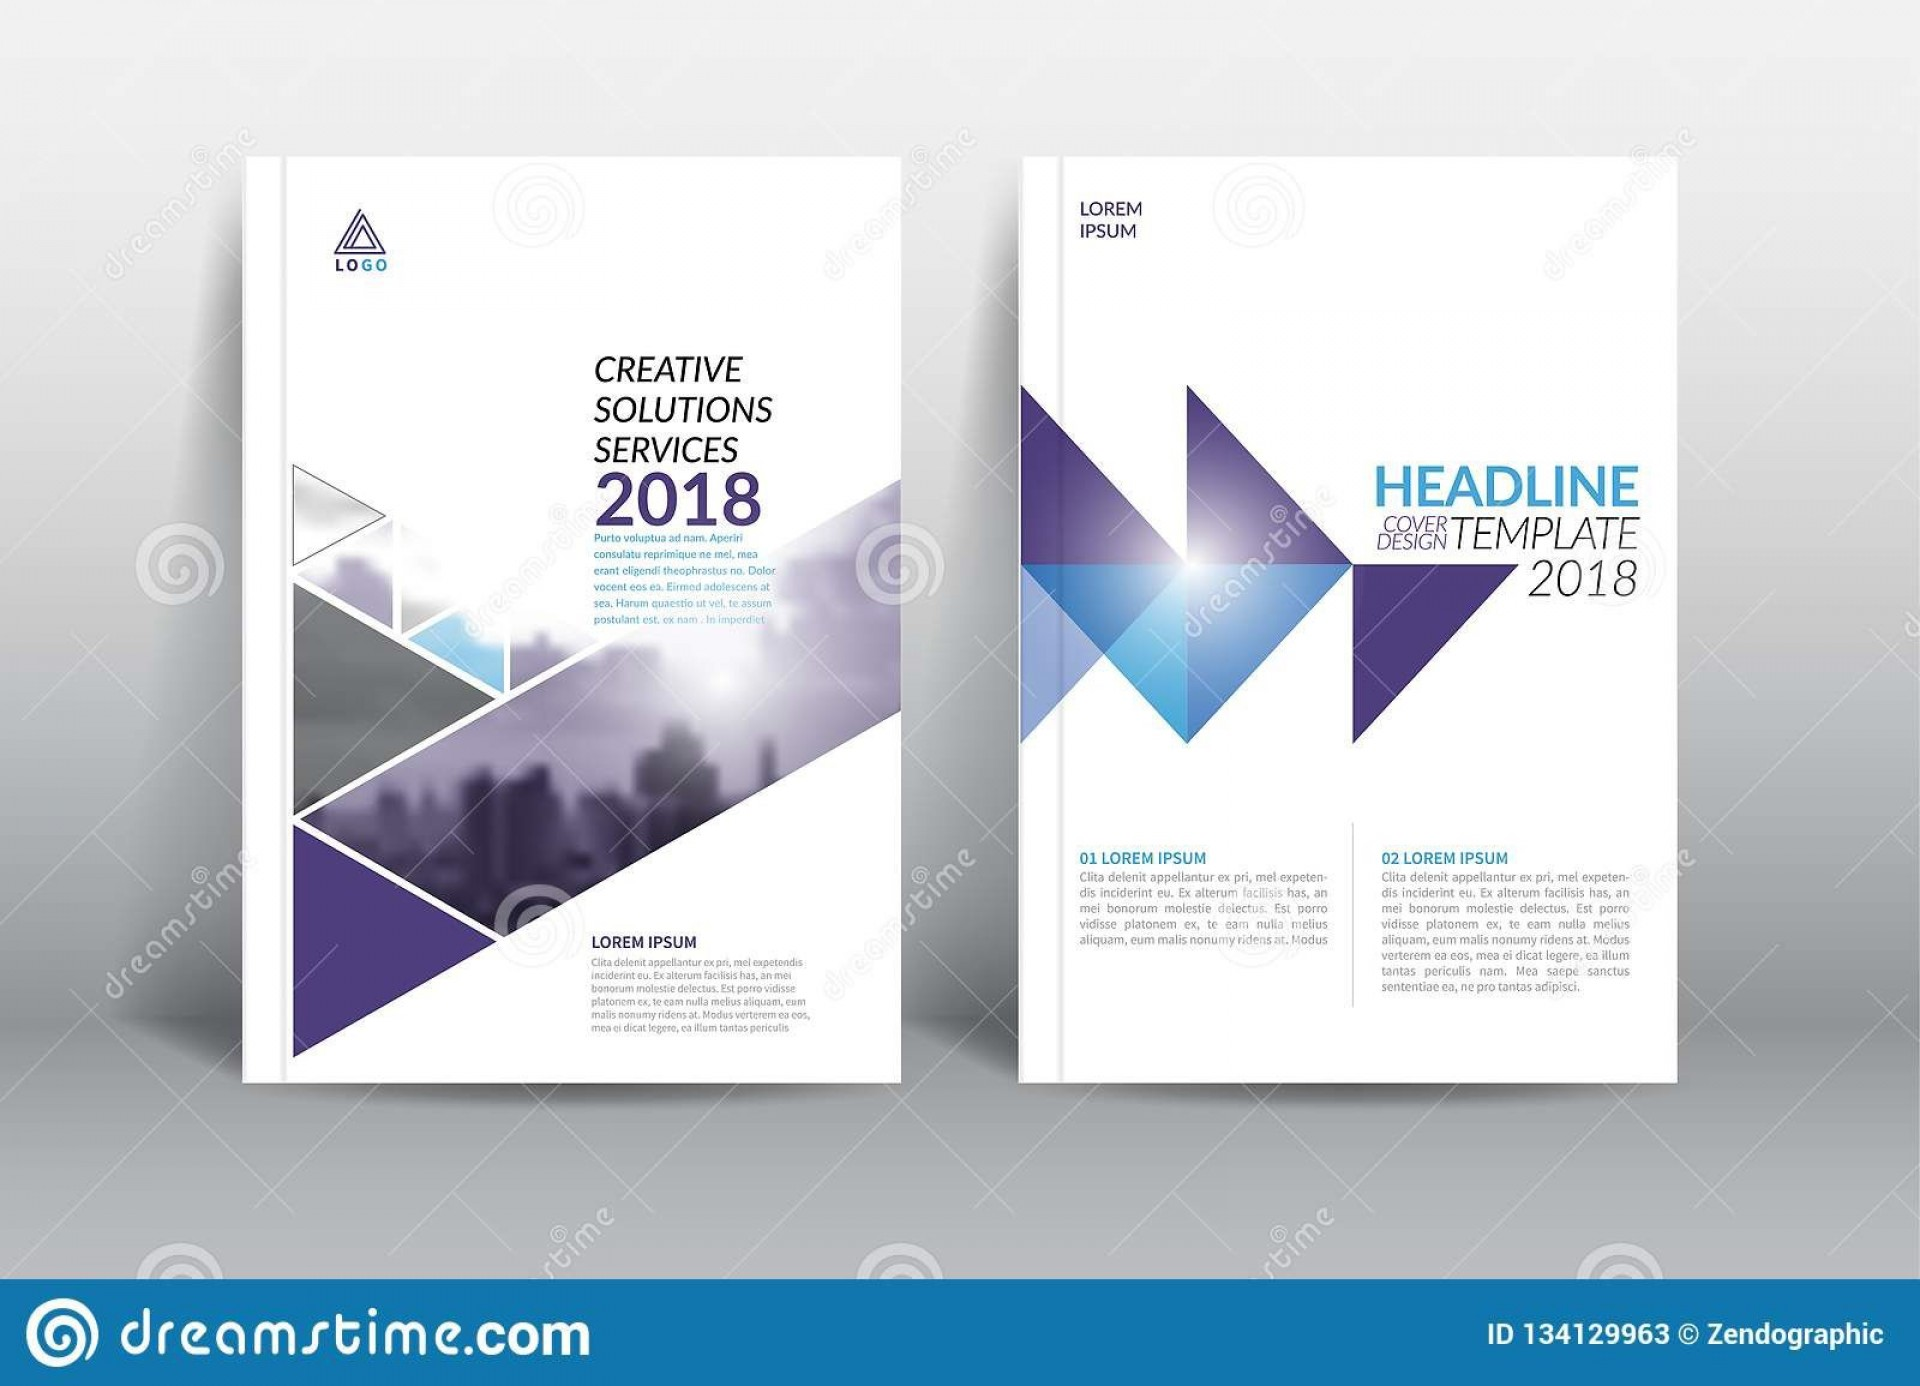 007 Frightening Free Download Annual Report Cover Design Template Example  In Word Page1920